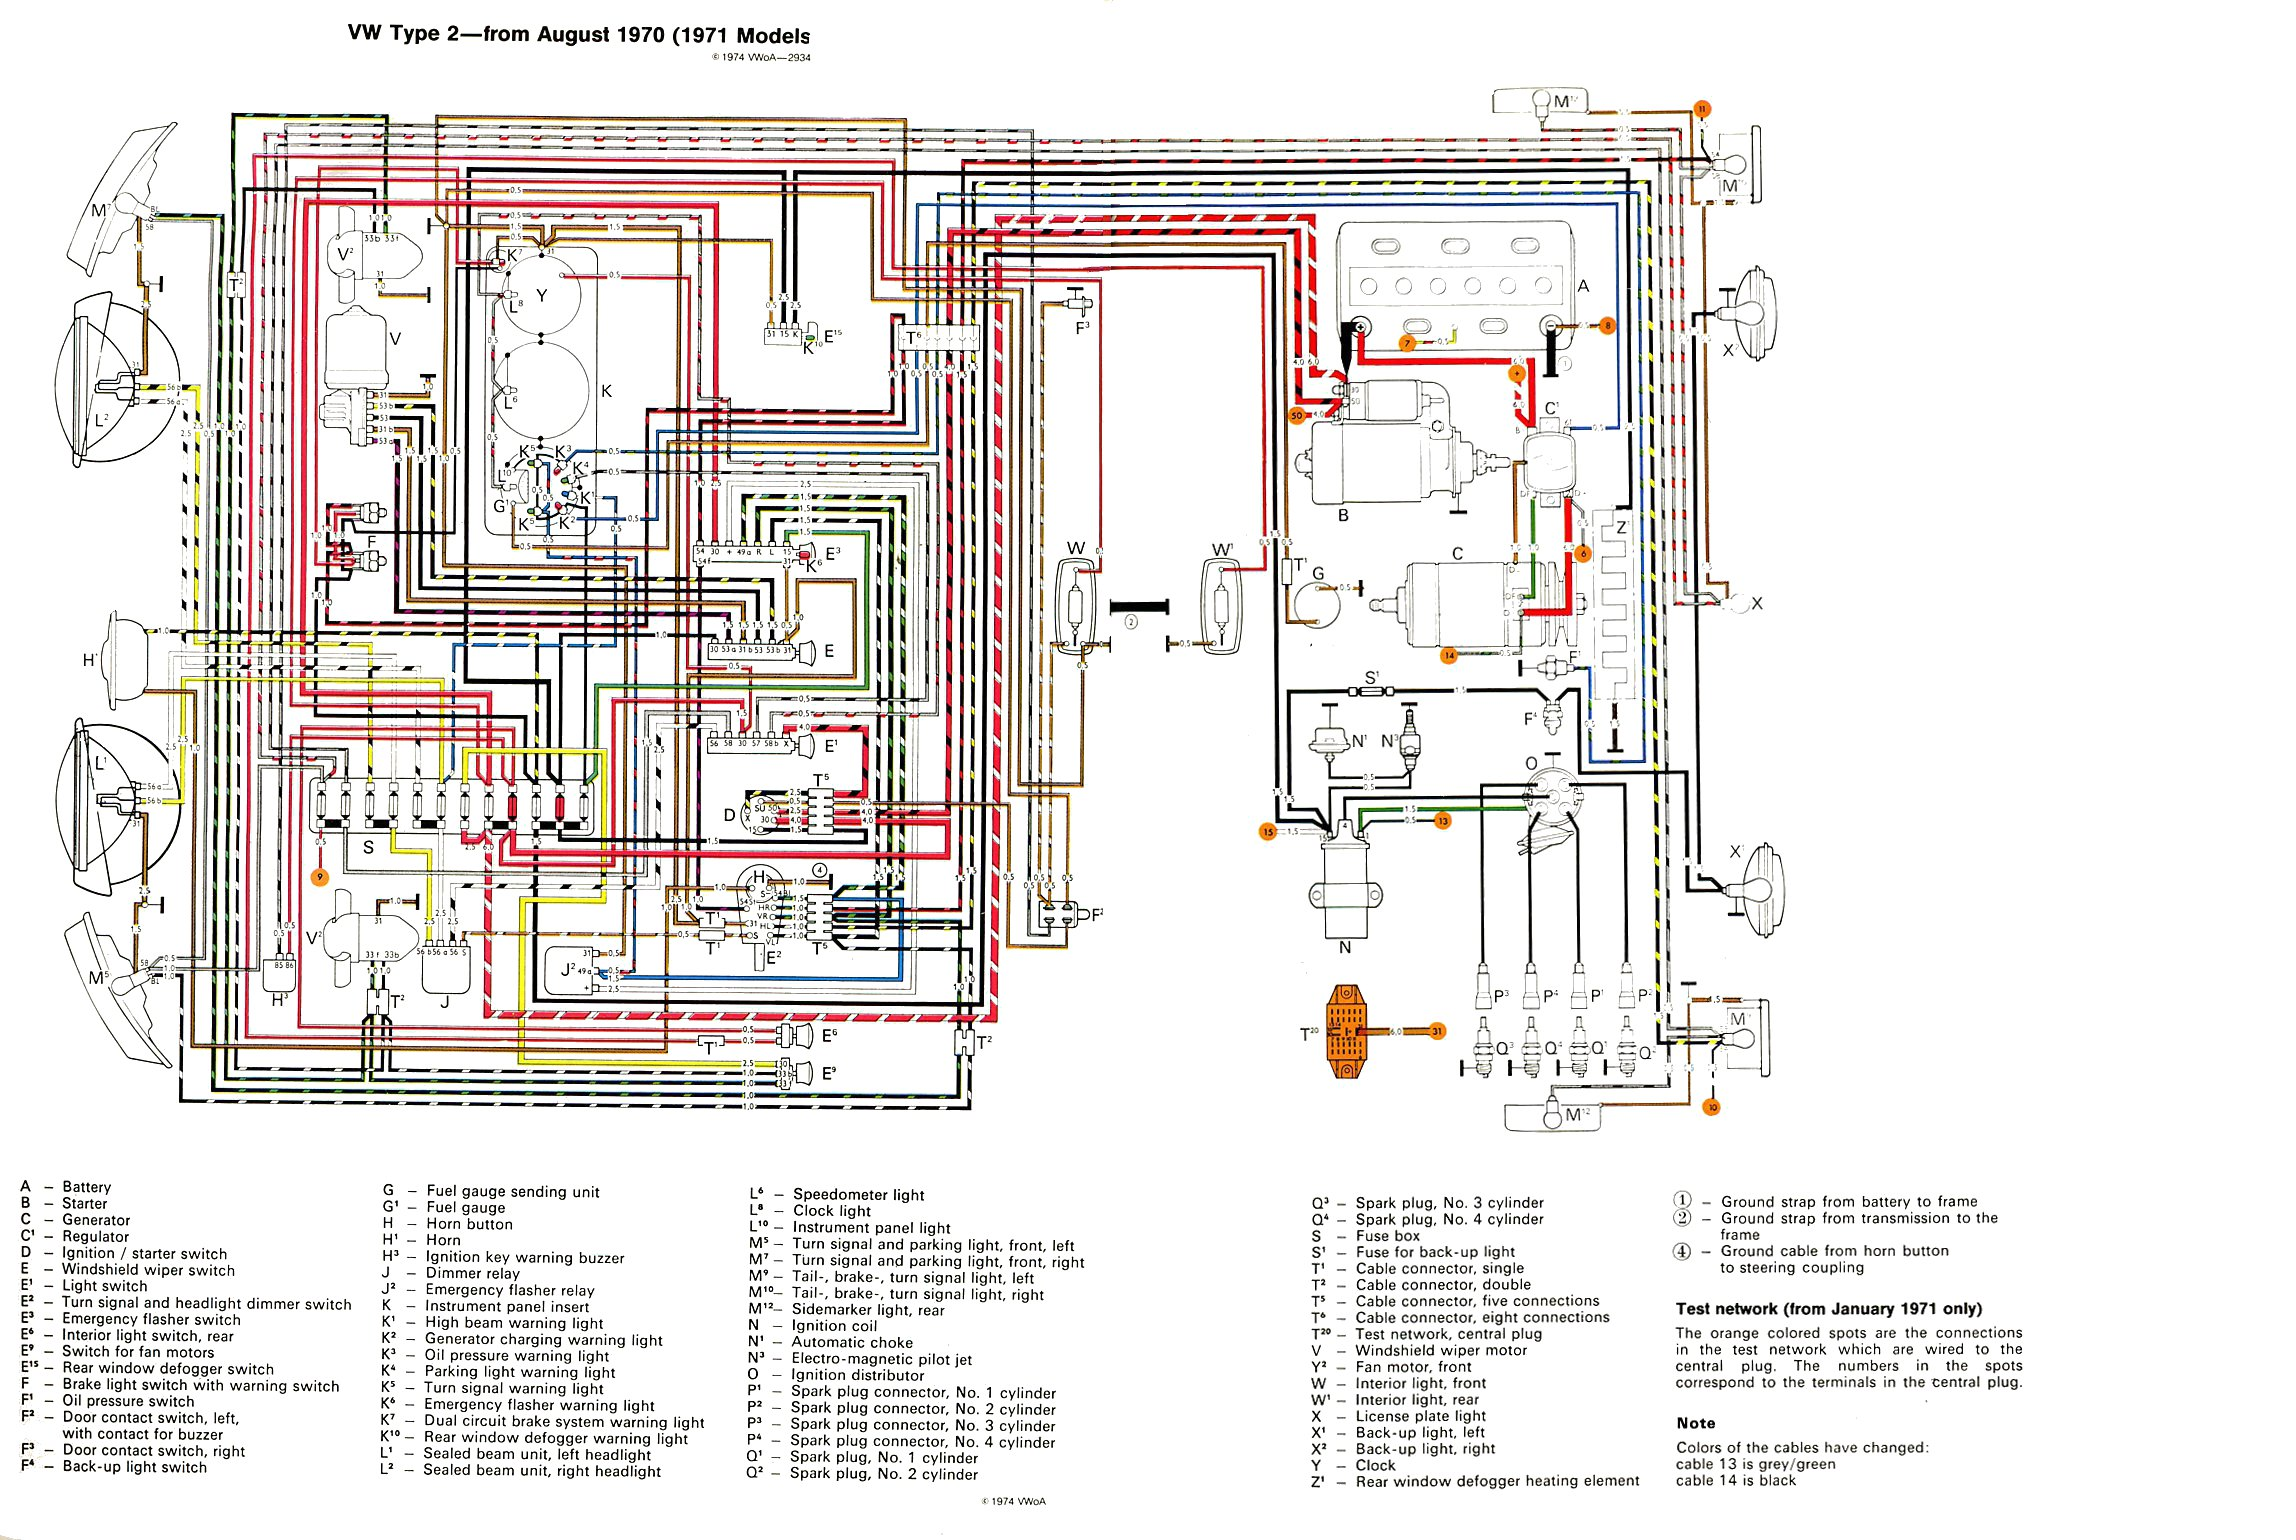 B Bos Wiring Diagram Expert Fuel Pump Harness Thesamba Com Type 2 Diagrams Rh Cat5e Cable